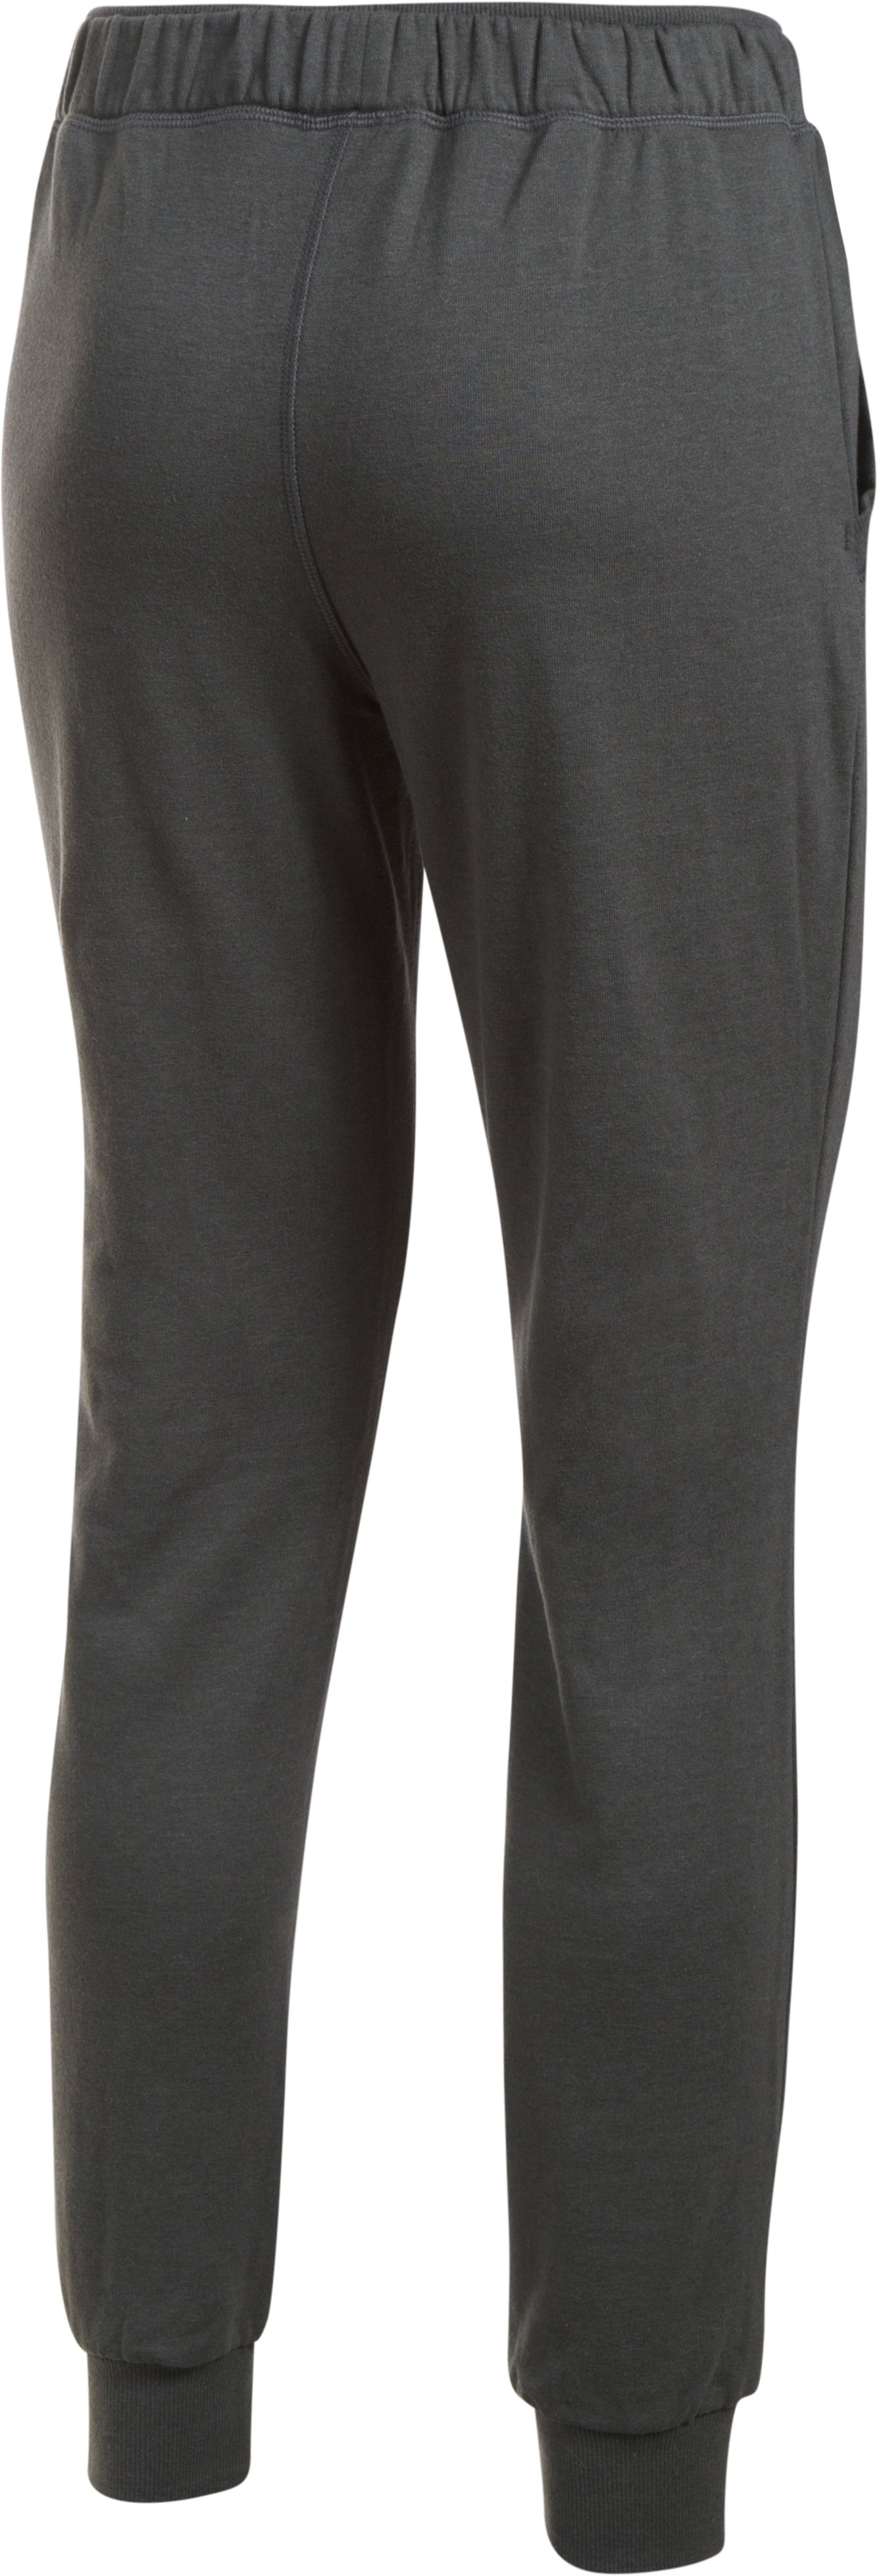 Women's South Carolina UA Tri-Blend Pants, True Gray Heather, undefined